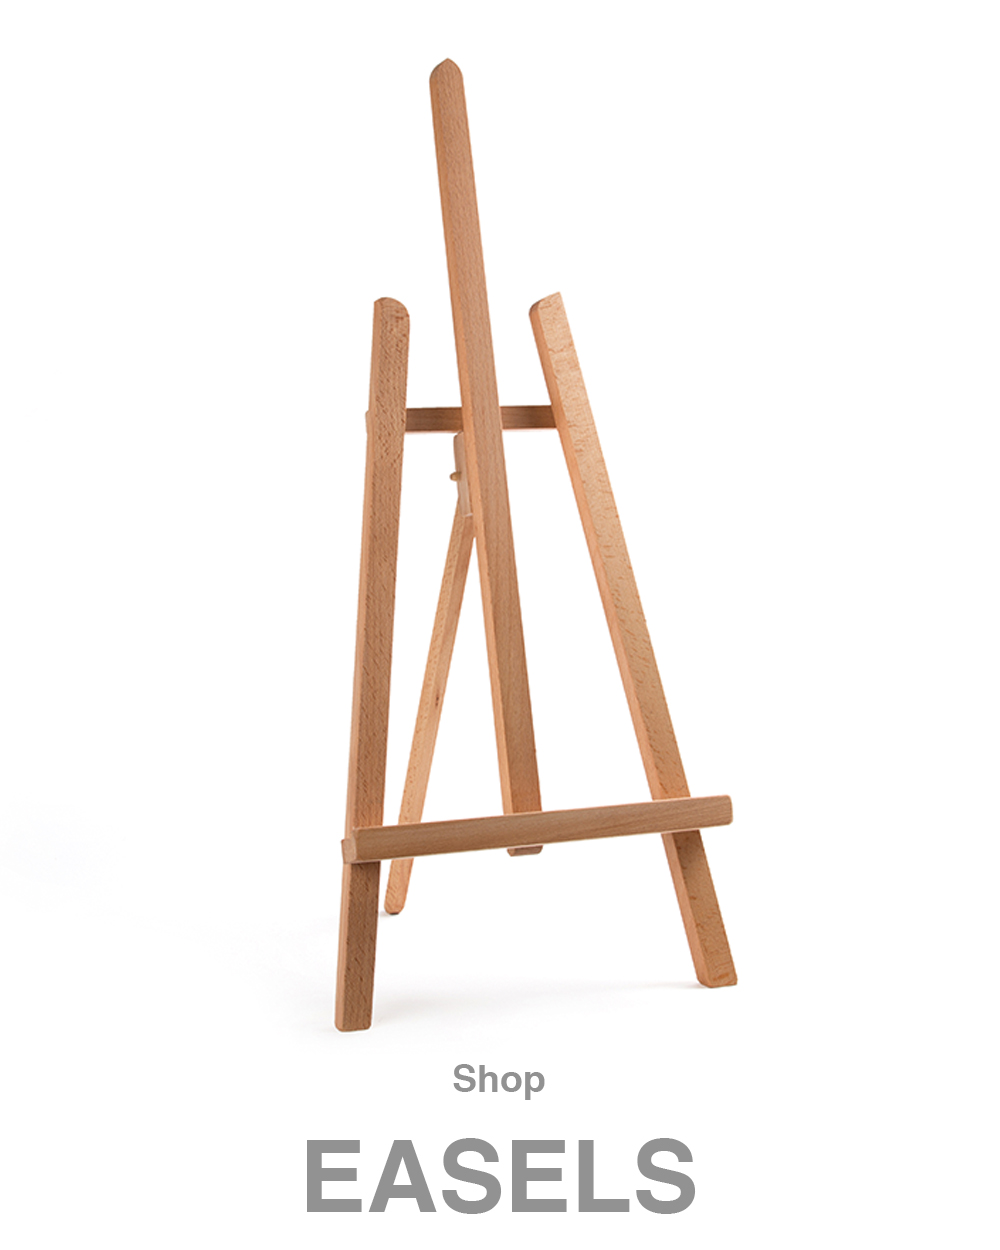 Studio Easels, Table Top Easels, Sketch Easels, Mini Easels,